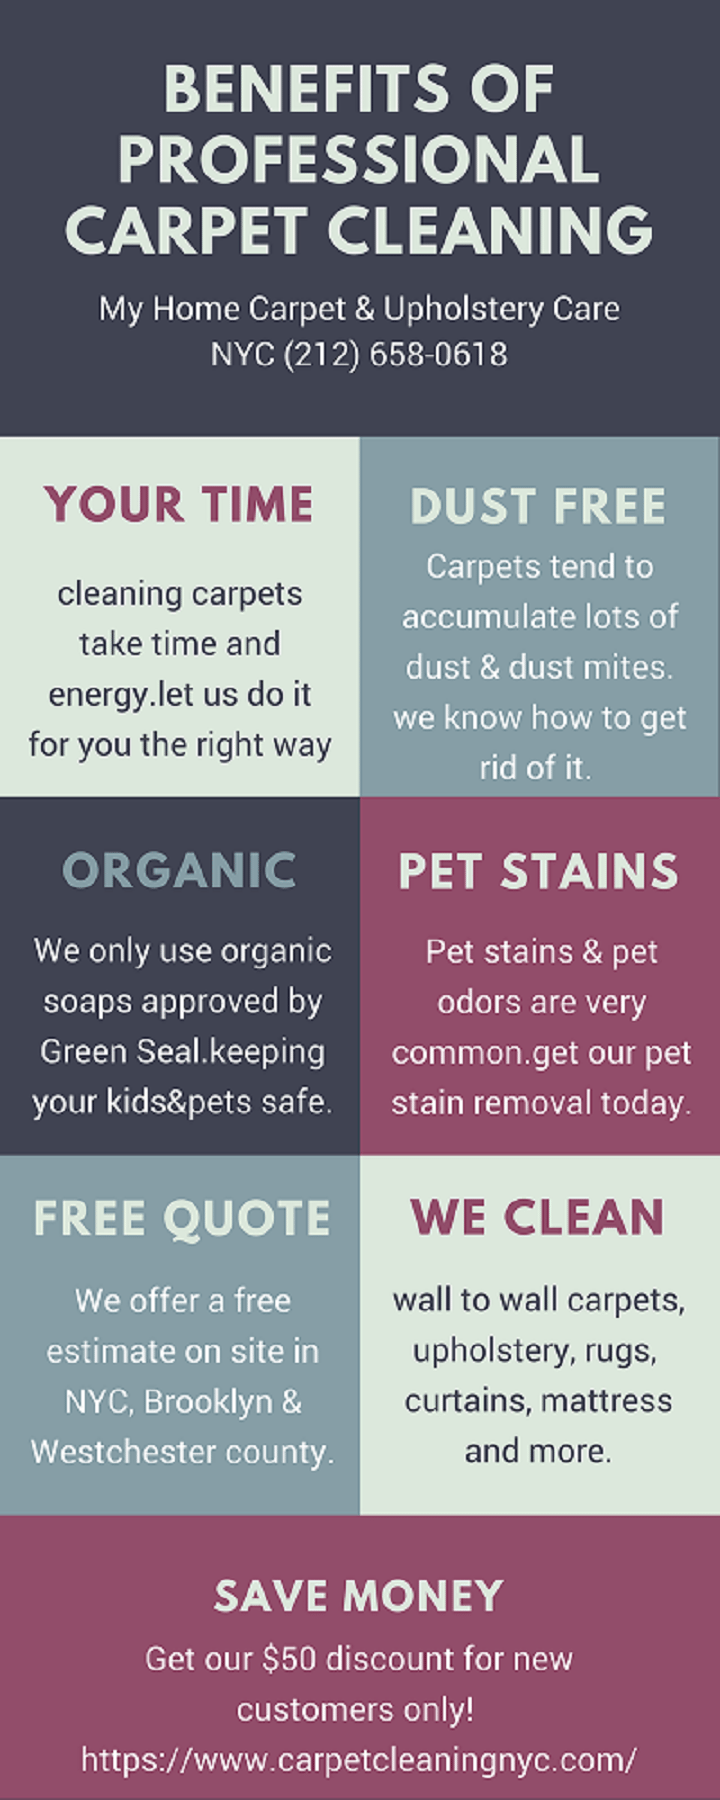 Carpet Cleaning Nyc Free Estimate 212 658 0618